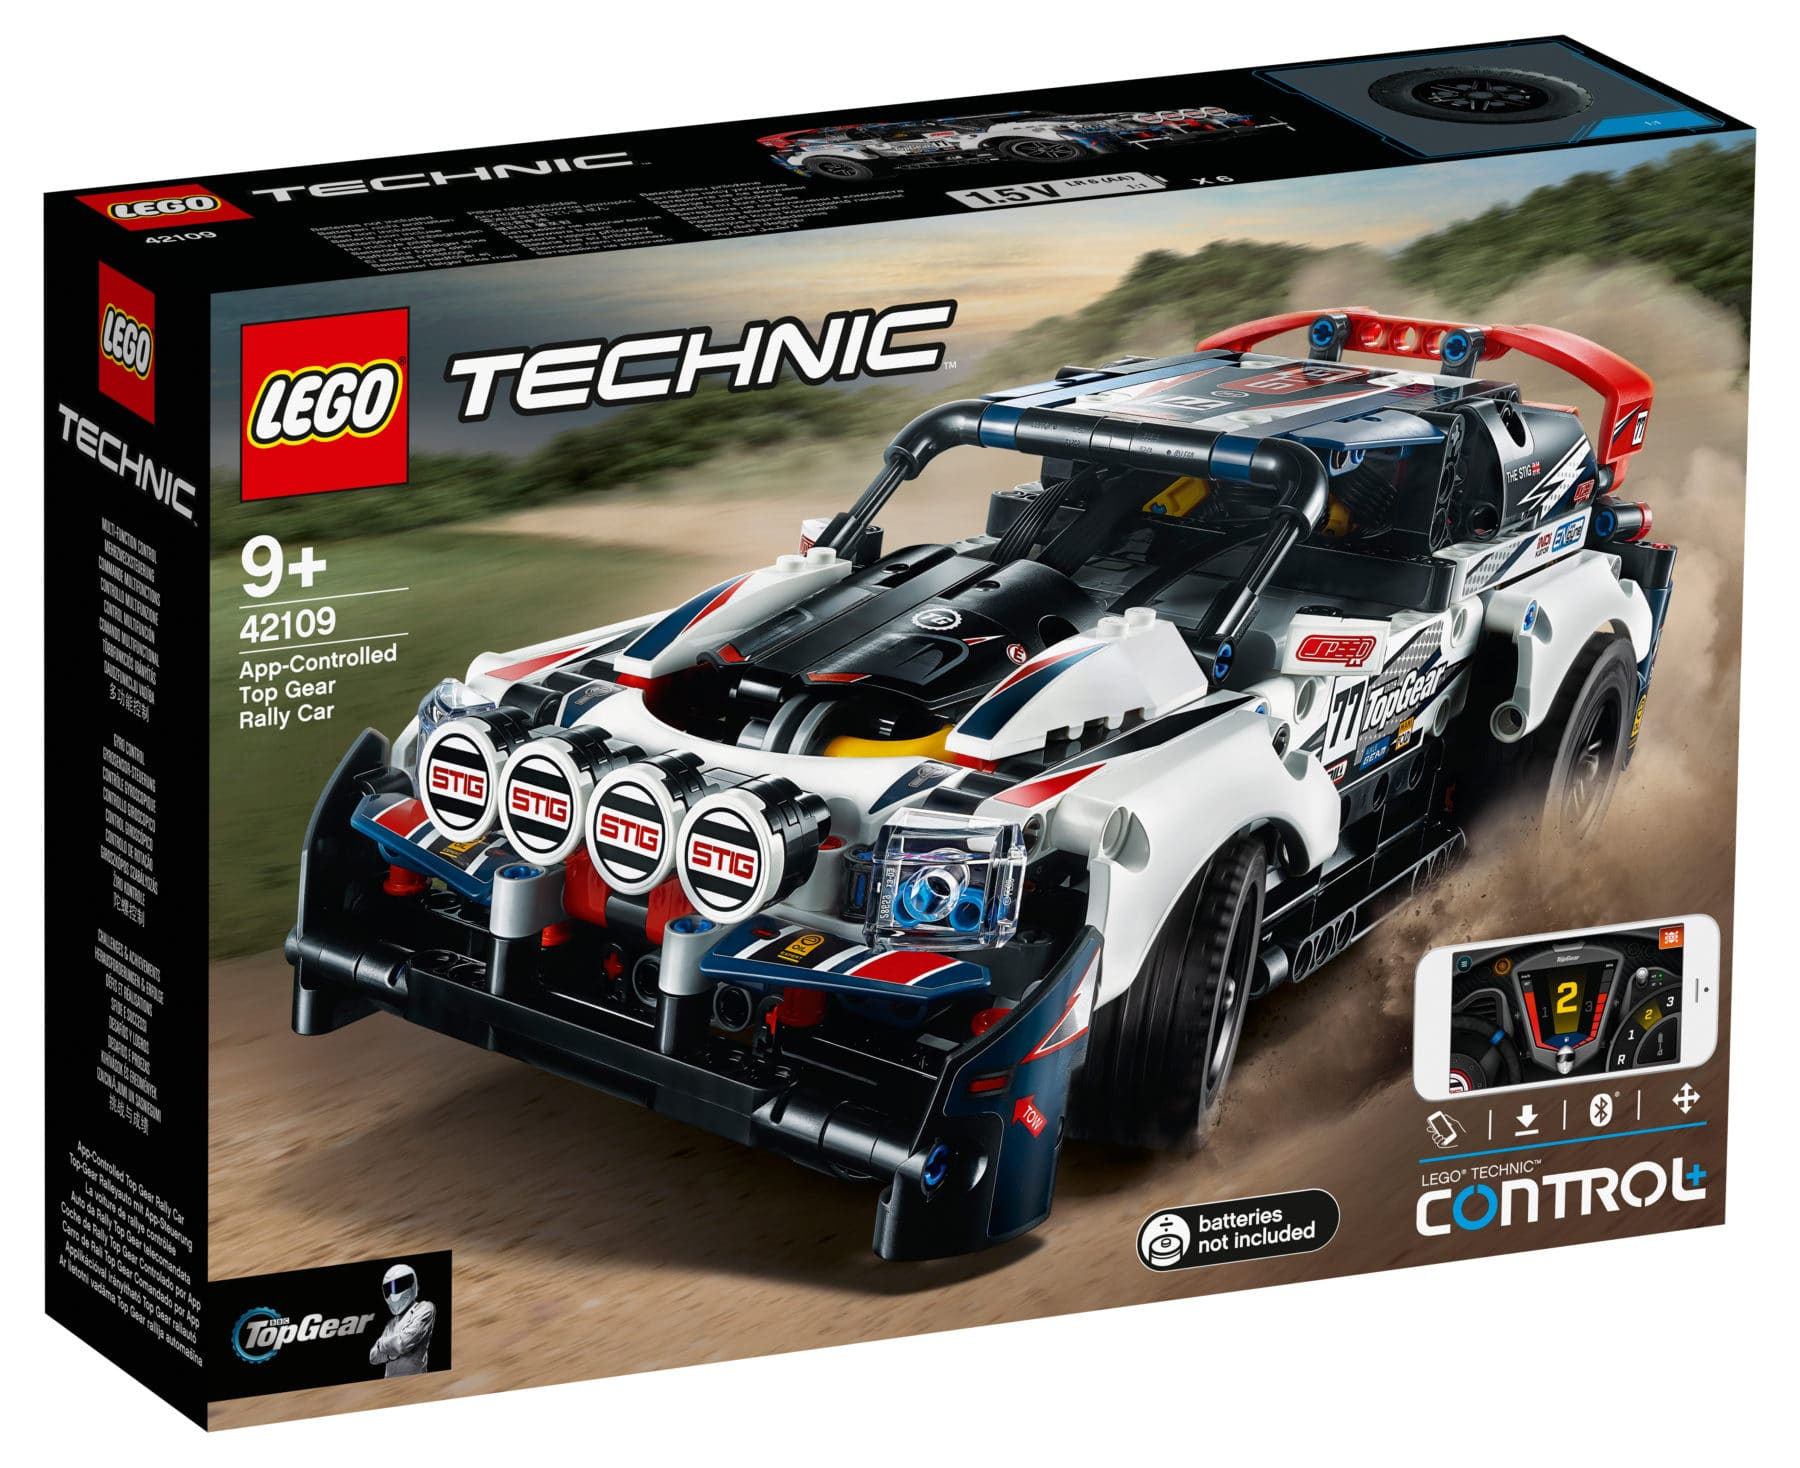 LEGO Technic 42109 Top Gear Rally Car Box